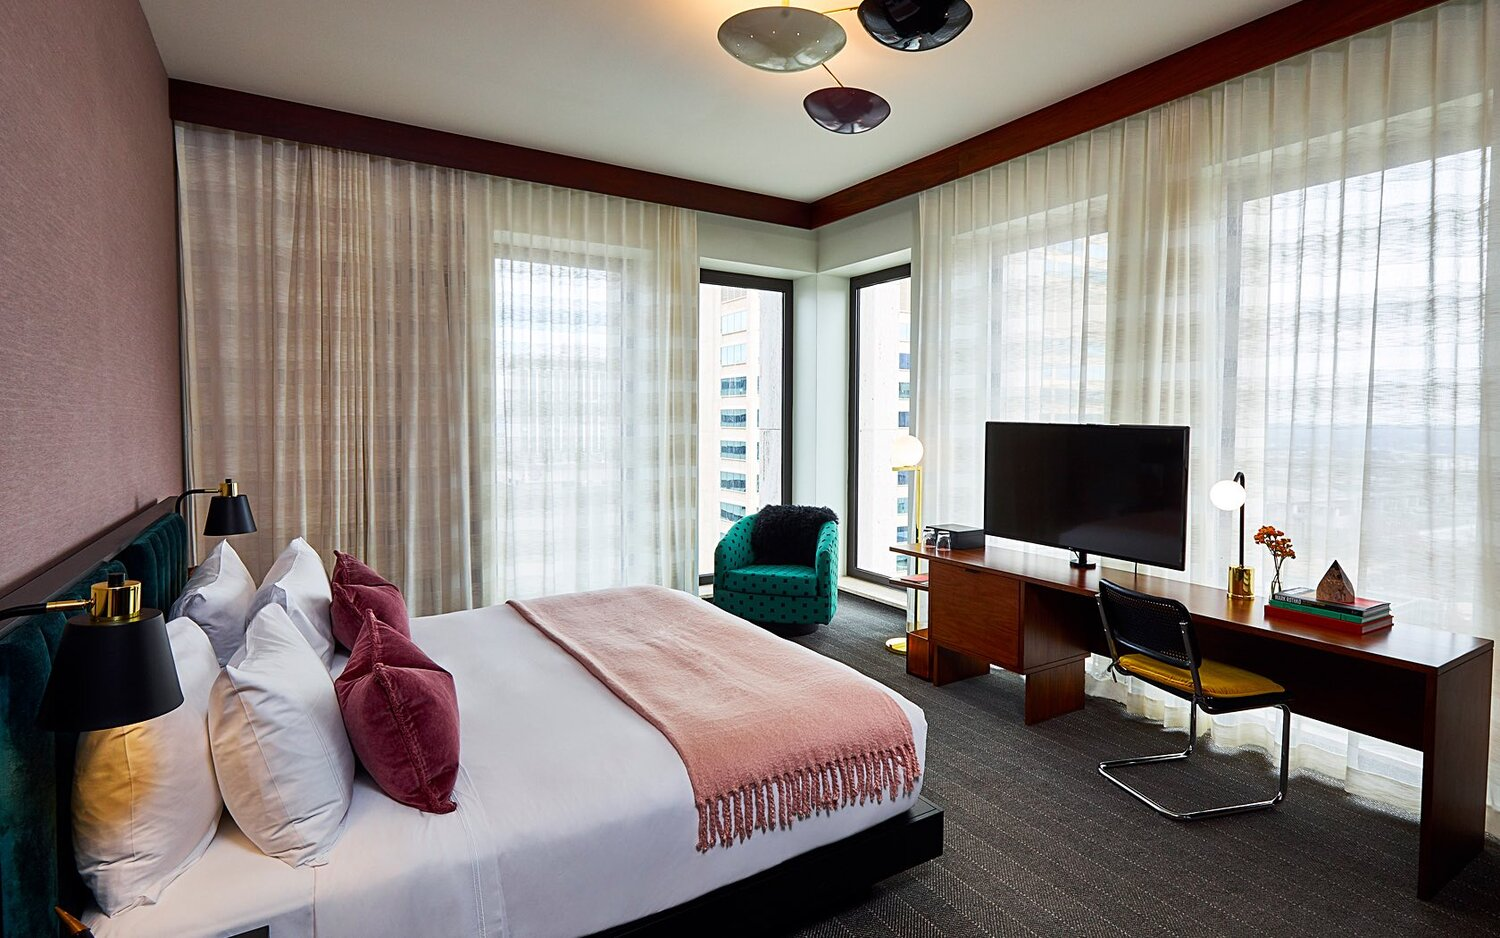 Rooms Suites Hotels In Downtown Nashville Tn Official Website Fairlane Hotel